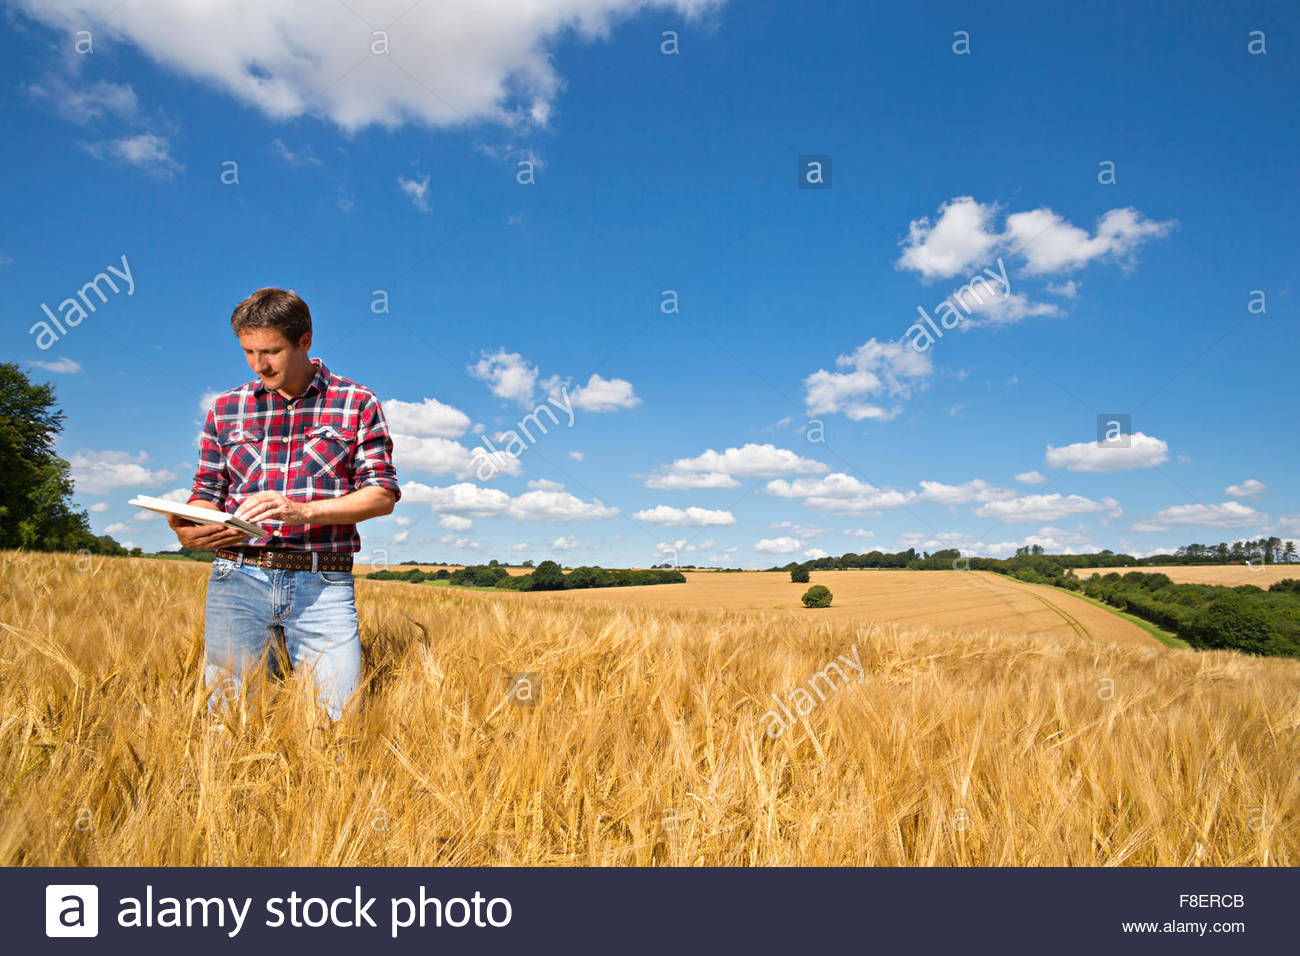 Farmer using digital tablet in sunny rural barley crop field in summer - Stock Image